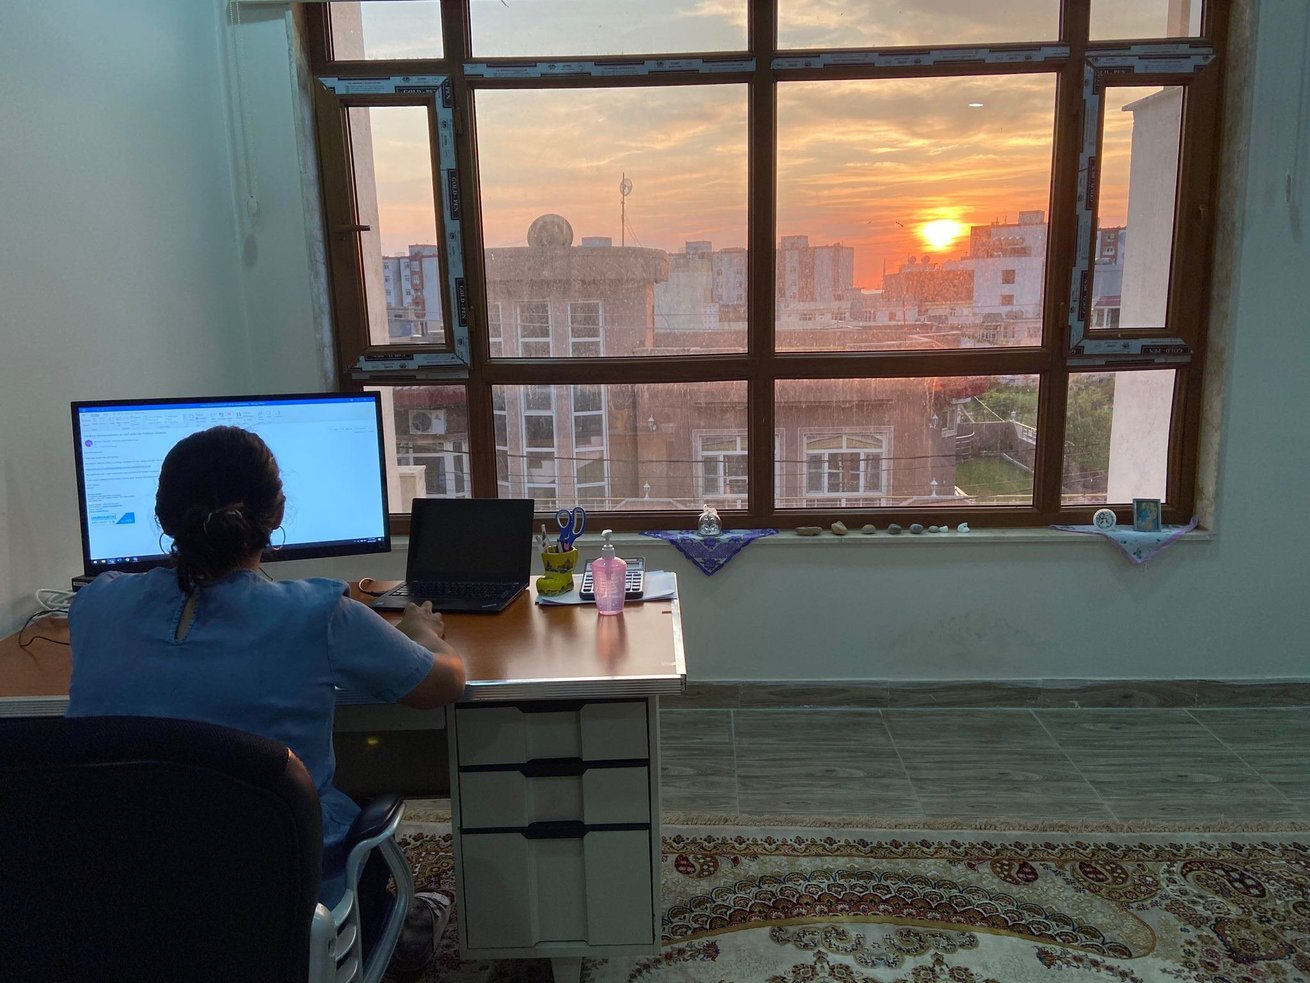 Meet Shanti Chirayath, CARE program officer in Iraq, who recounts the first weeks of lockdown, the challenges of remote programming and what it's like to celebrate one's birthday in times of social distancing.